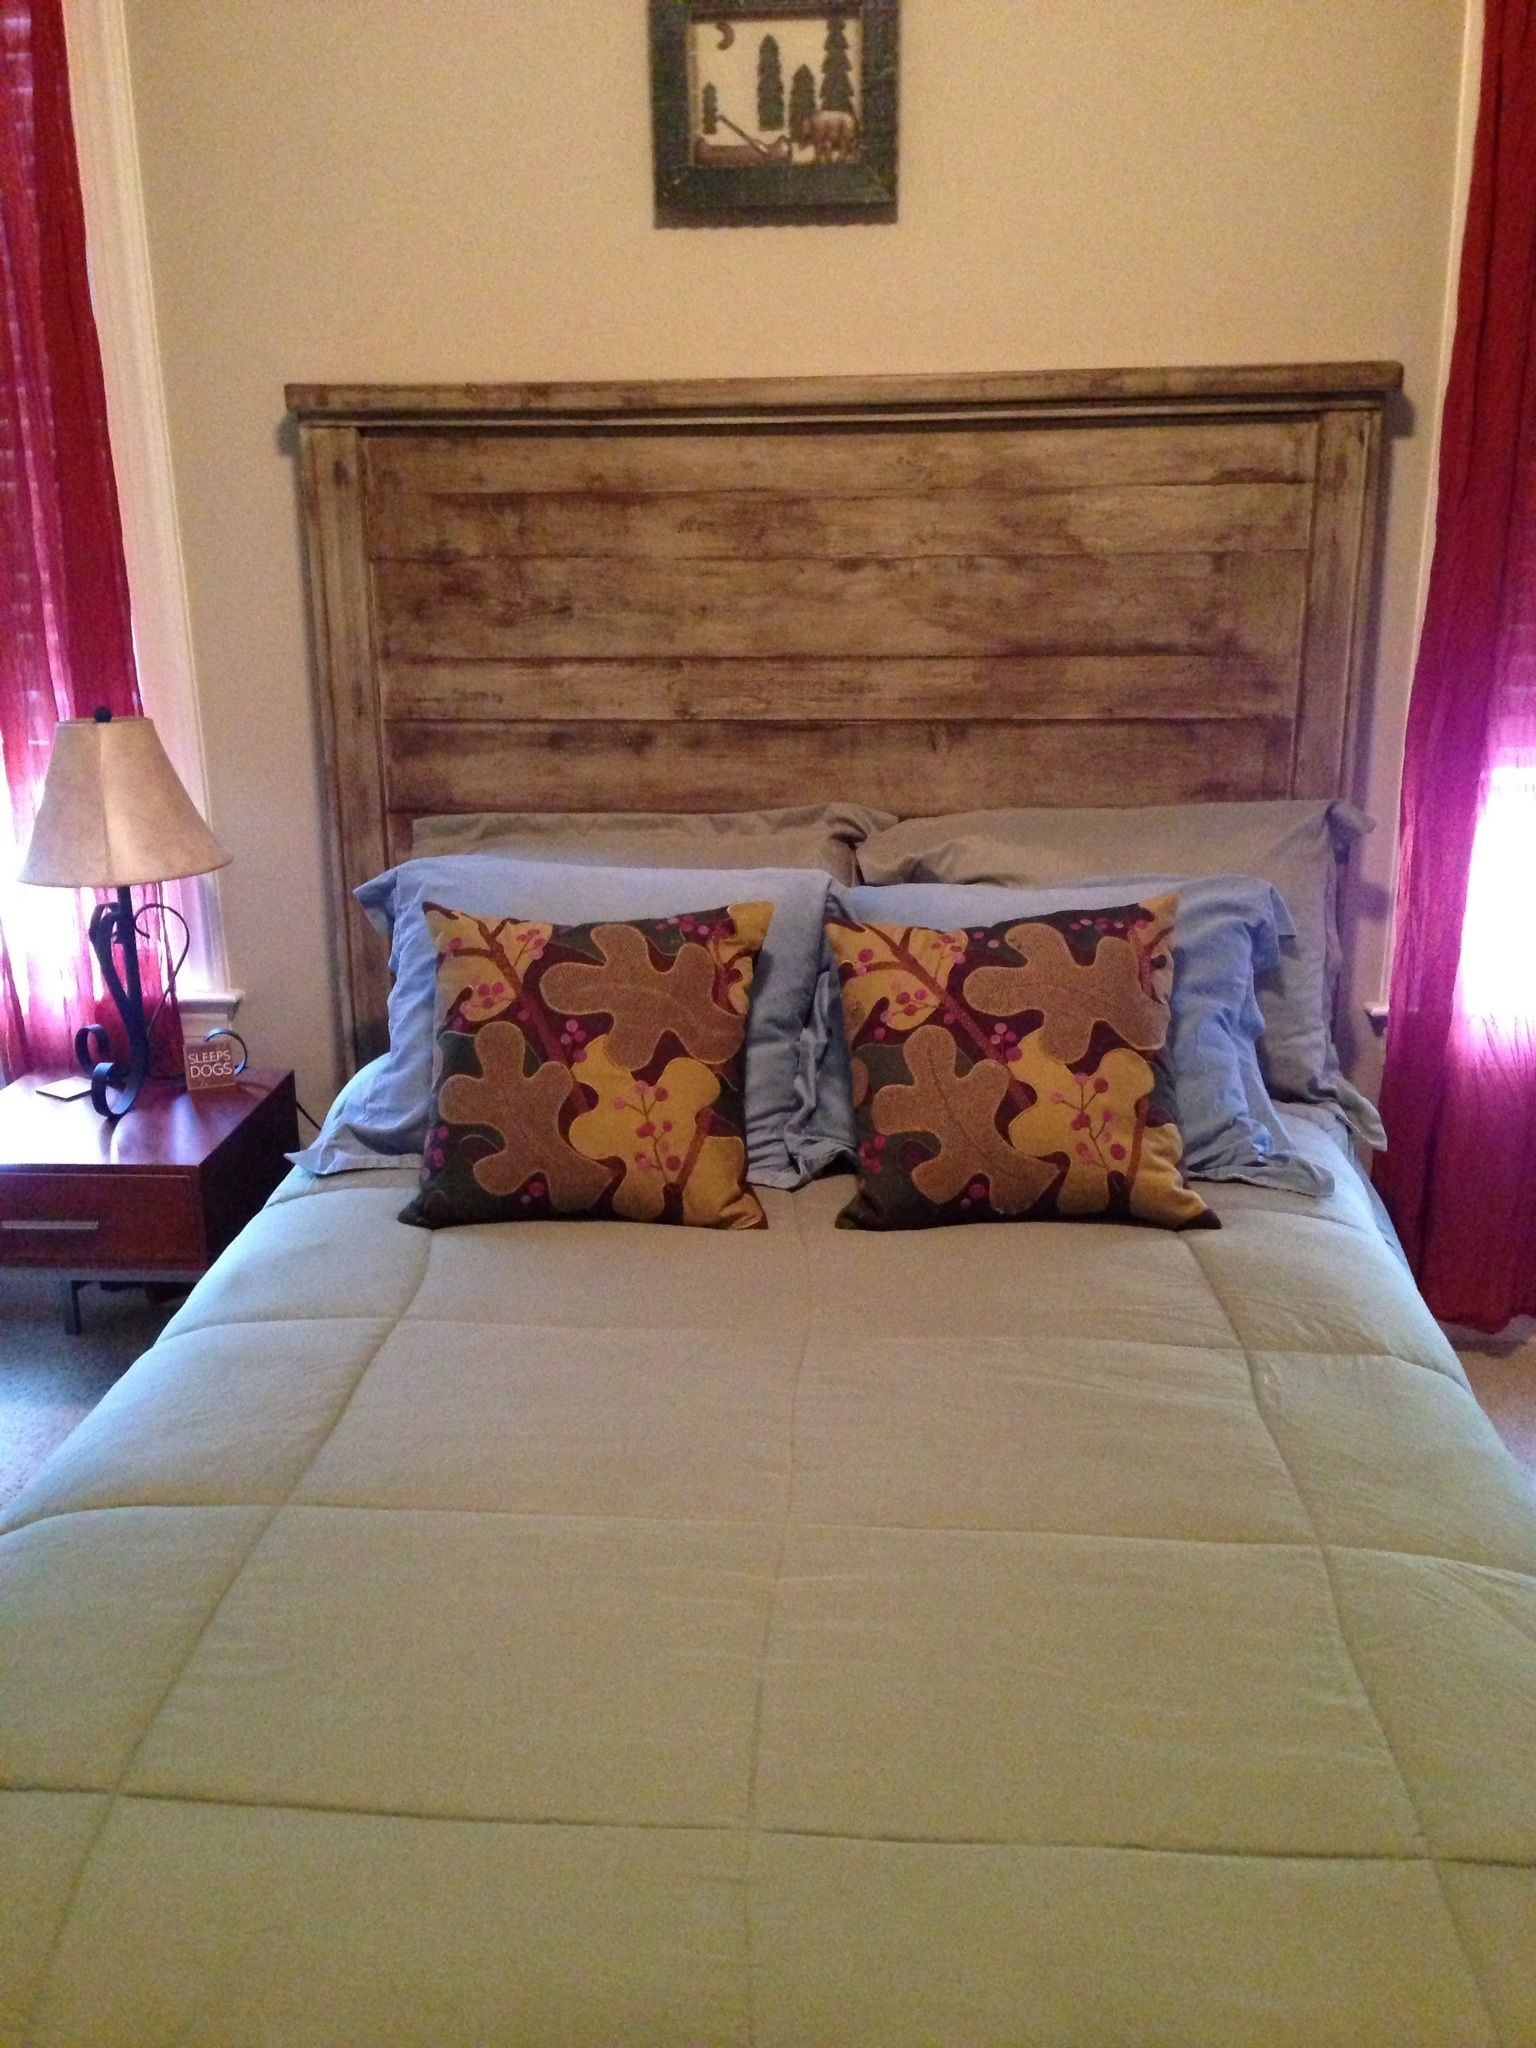 Reclaimed wood full size headboard | Do It Yourself Home Projects ...